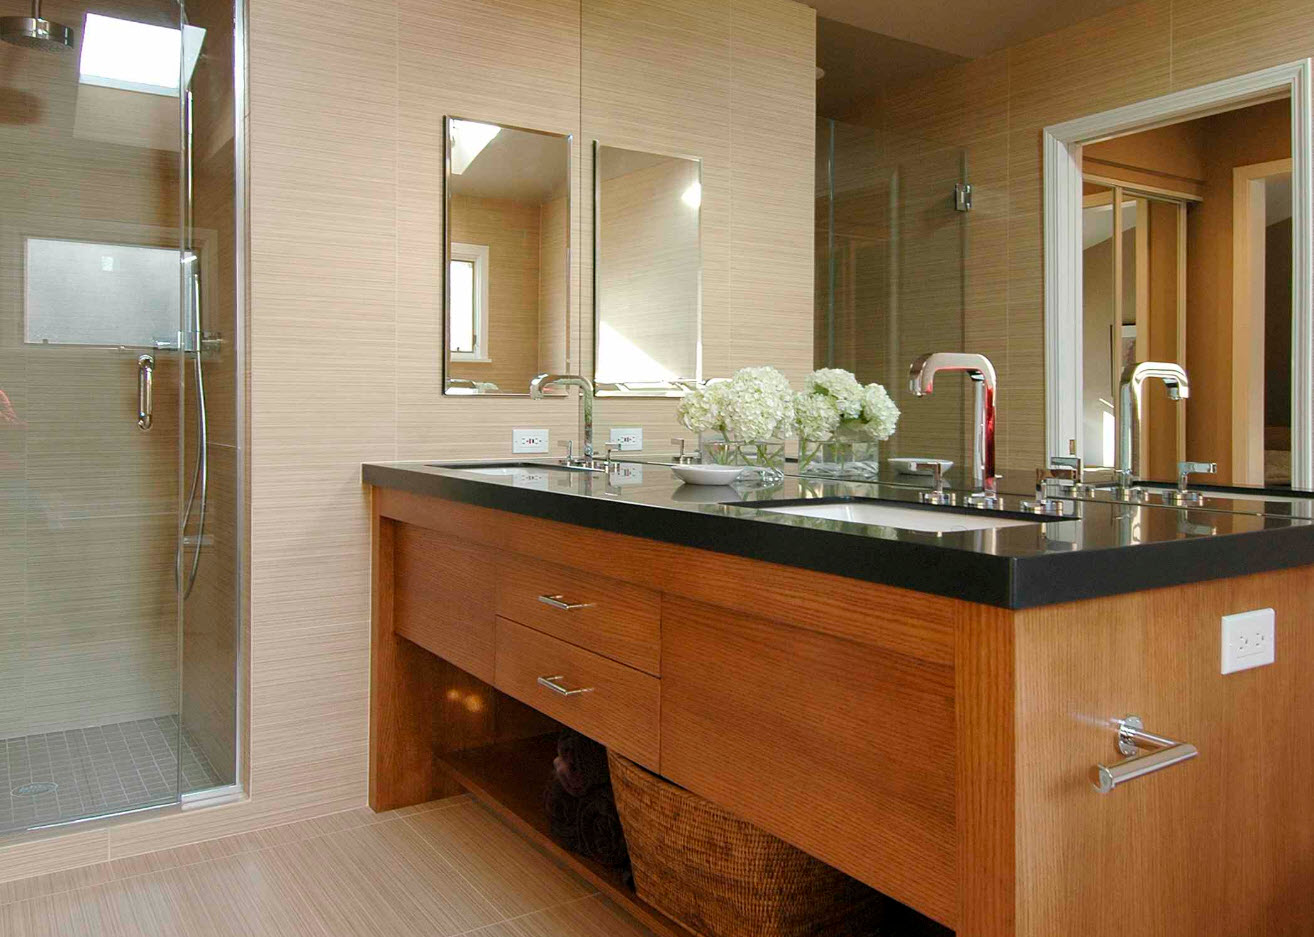 Wooden big vanity in the large private house's bathroom